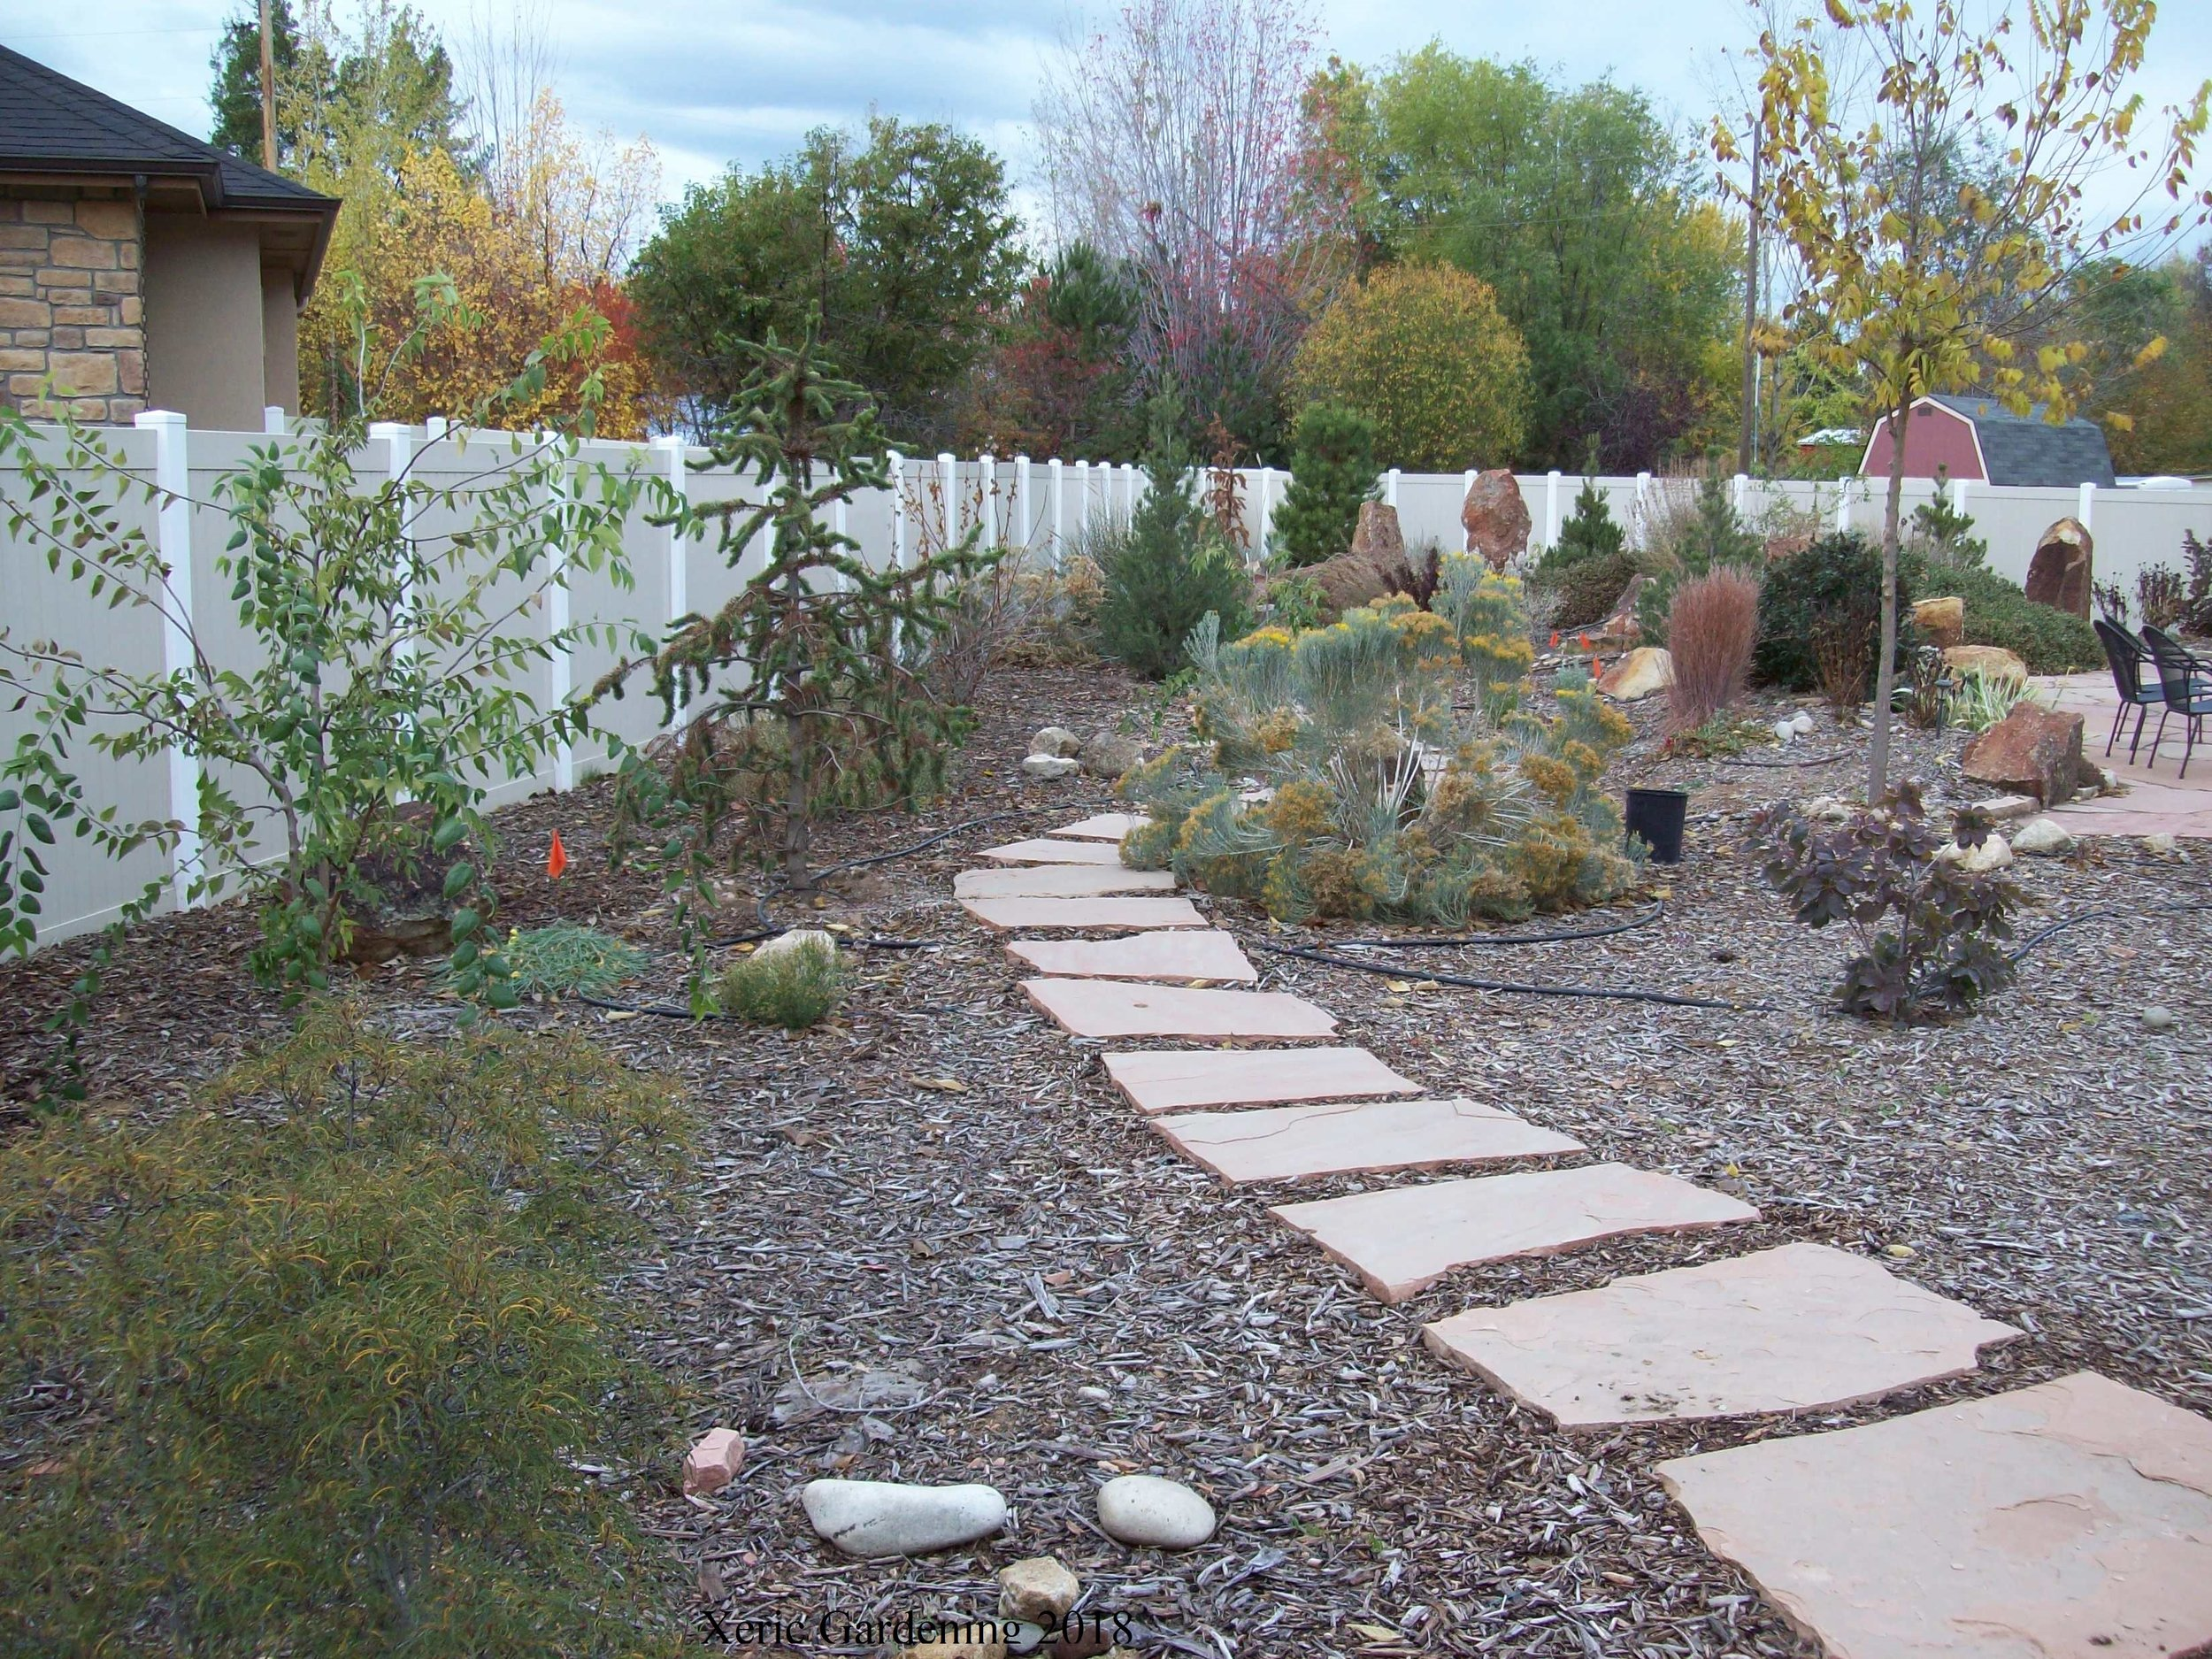 YEAR 3  The last year of hardscaping with pathways was completed. Trees, shrubs, and perennials filling in. Watering starts in mid-May and is once every three weeks.